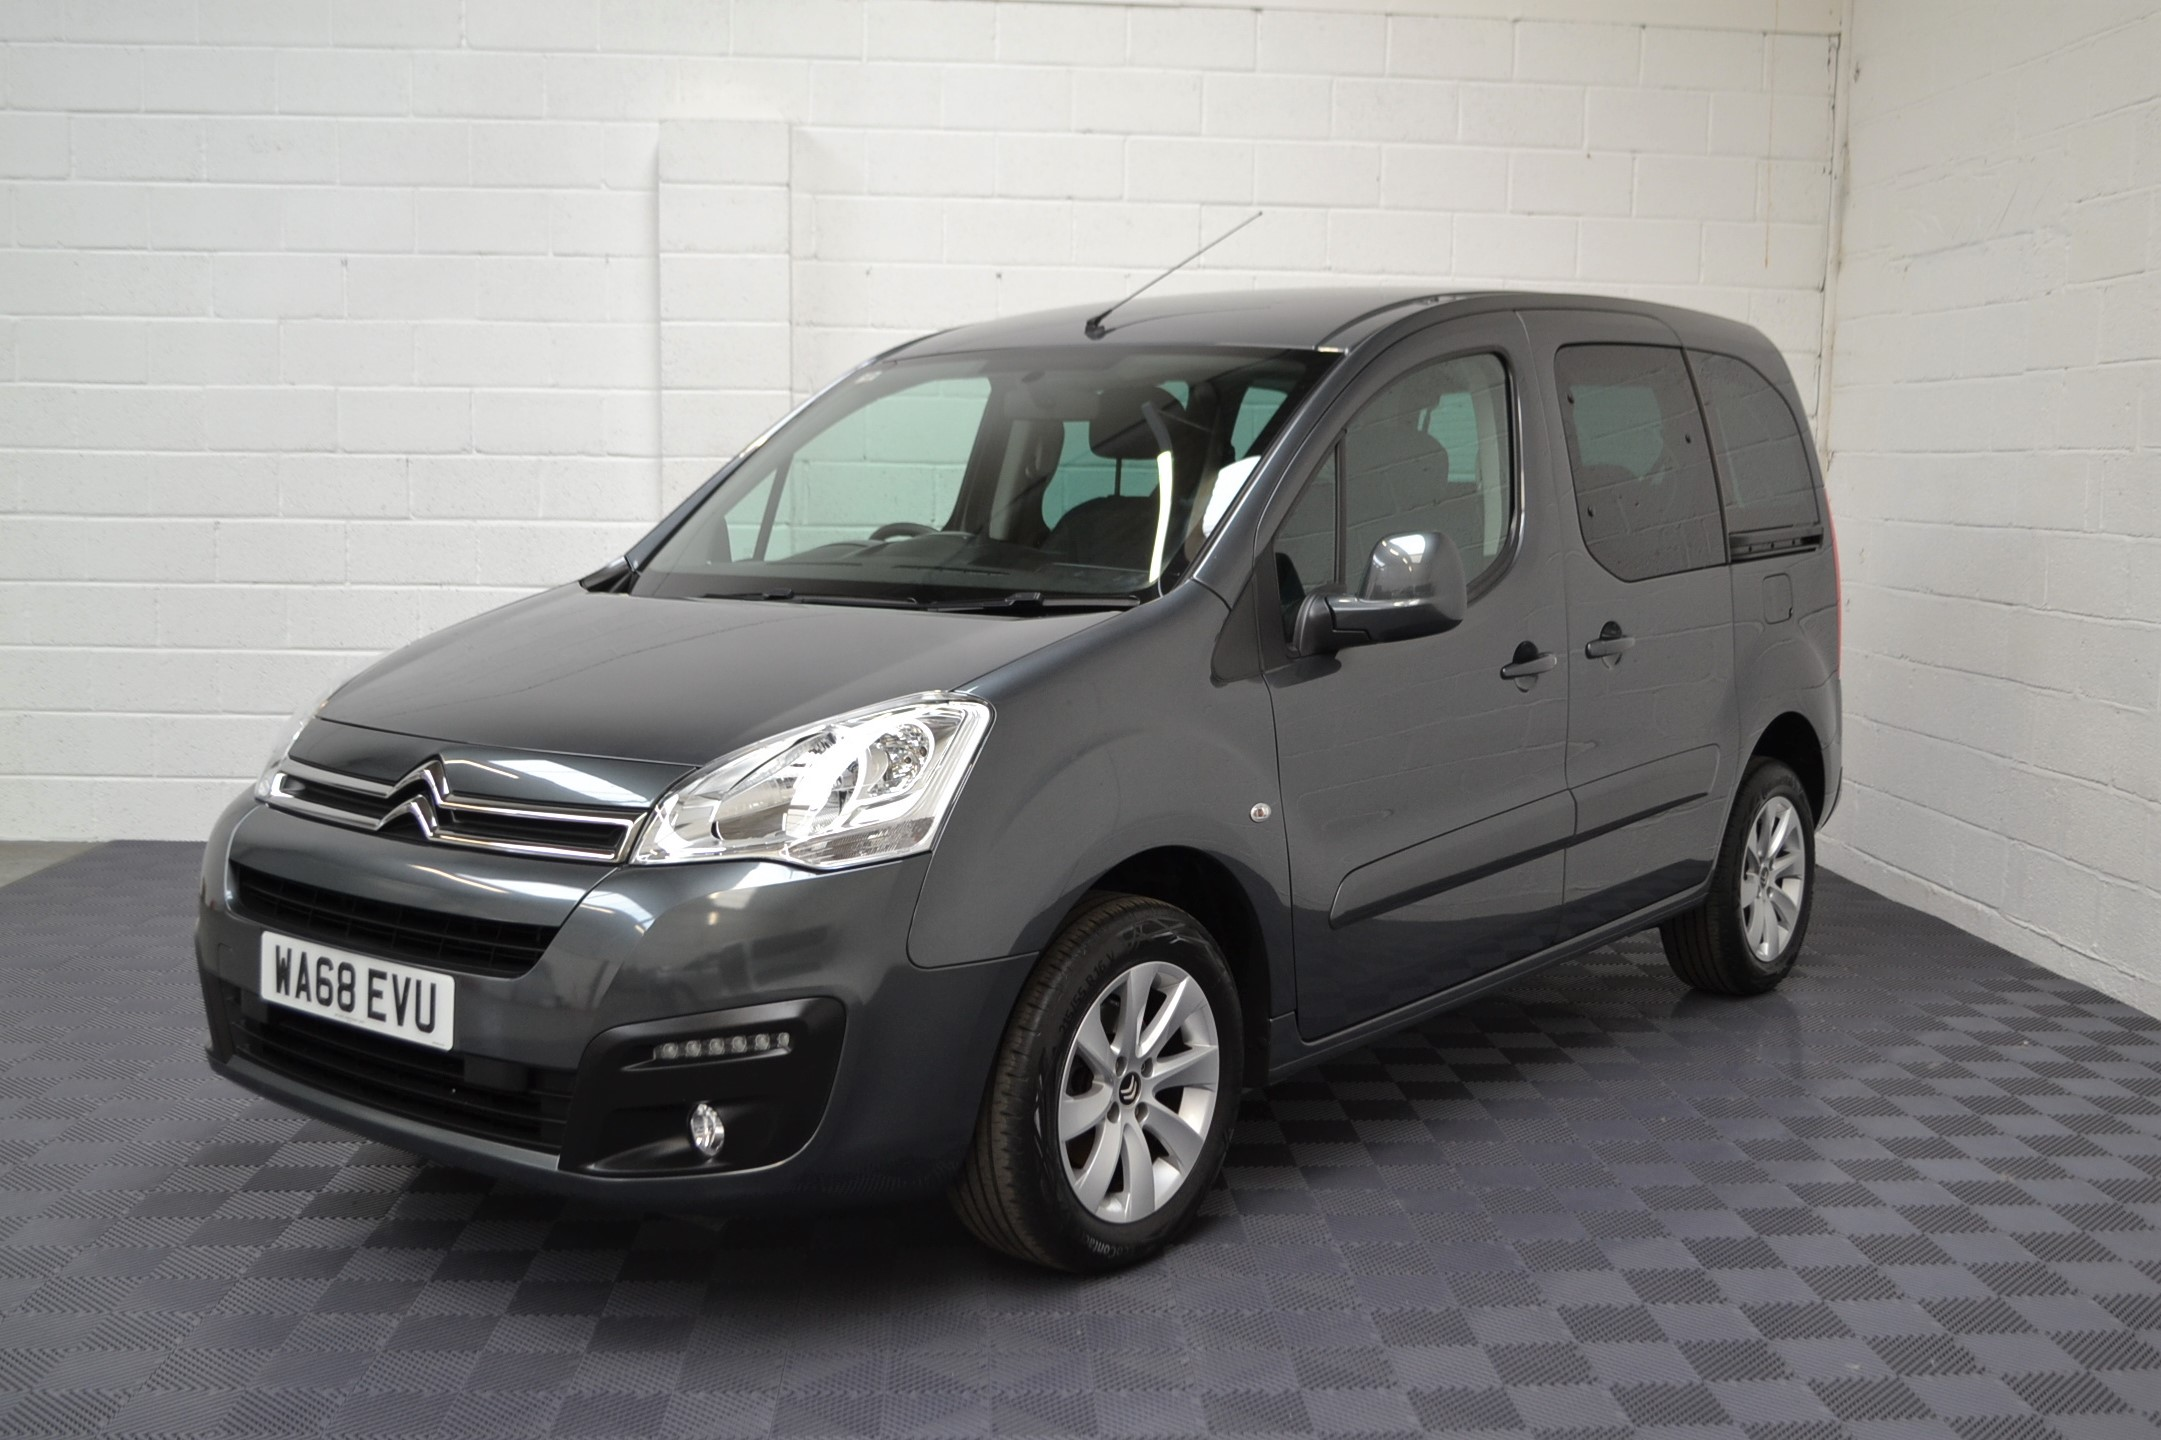 Disabled Cars For Sale Bristol Wheelchair Accessible Vehicles Used For Sale Somerset Devon Dorset Bath Peugeot Partner WA68 EVU 6